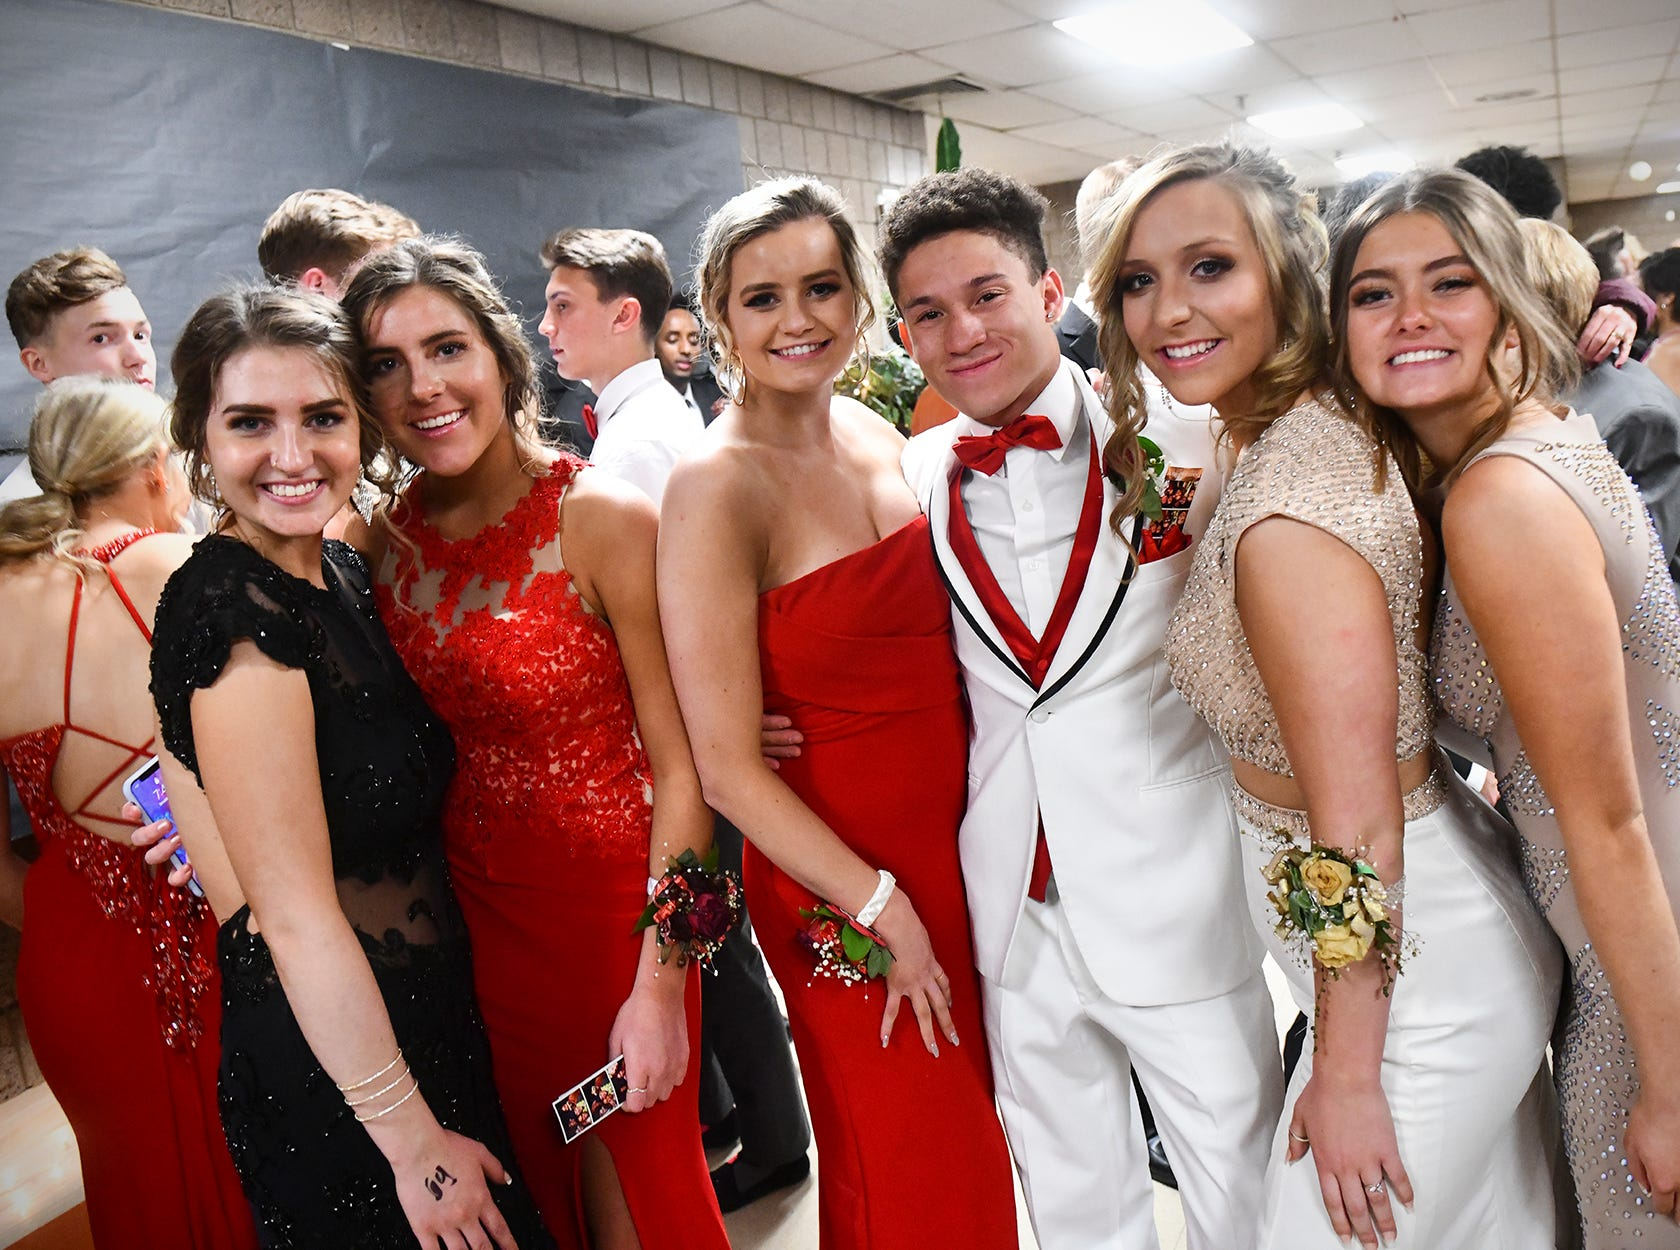 Friends gather for a photograph following prom grand march Saturday, April 27, at Tech High School in St. Cloud.